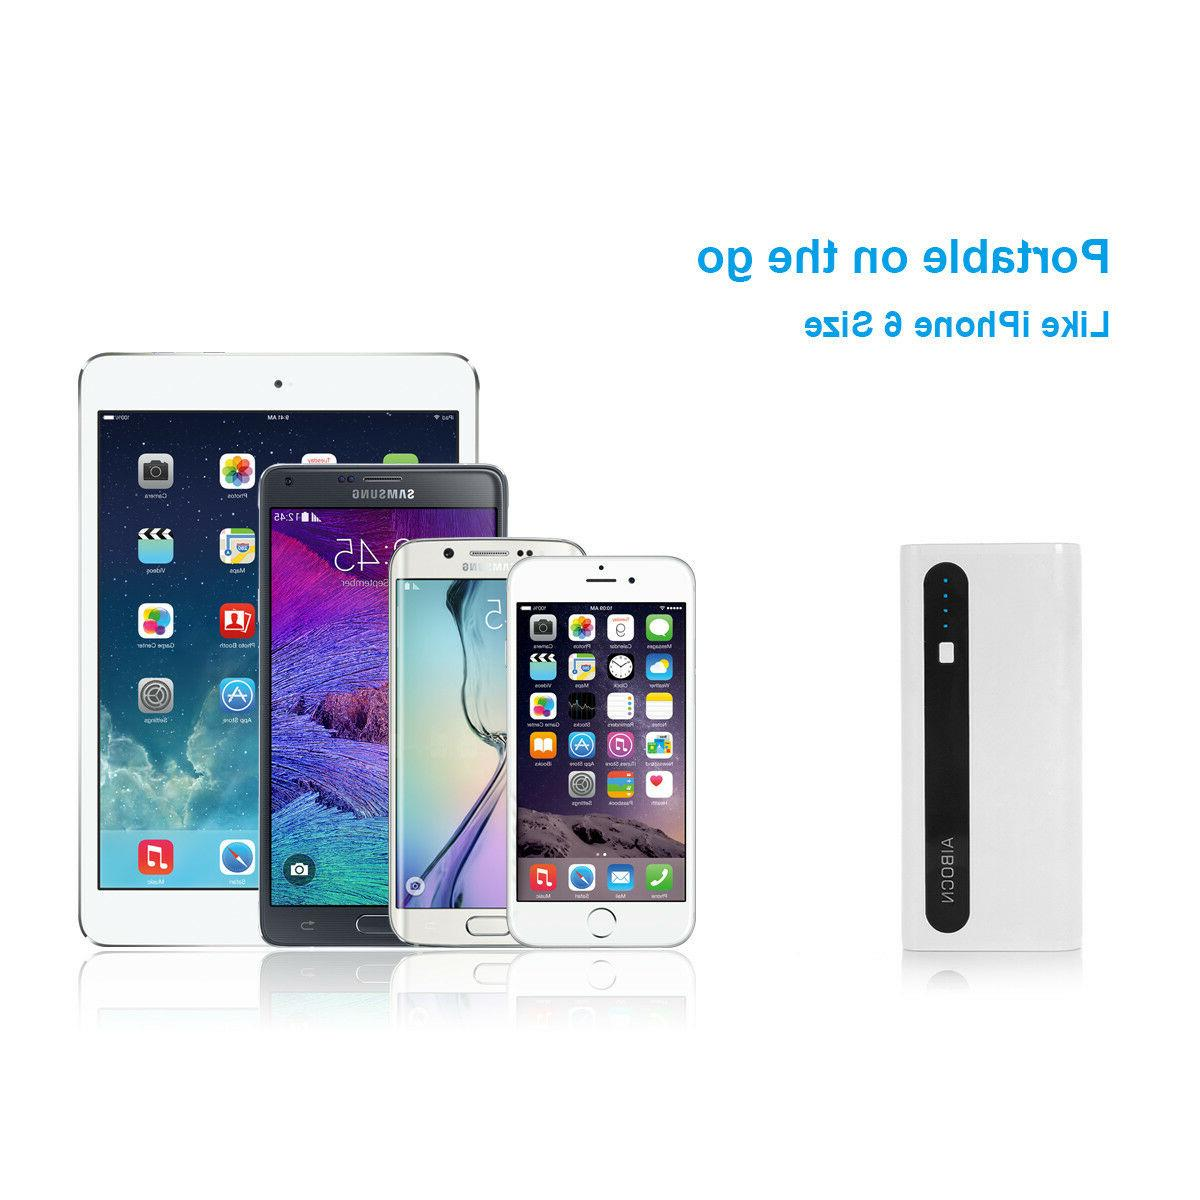 Aibocn Portable Battery Charger iPhone Samsung +